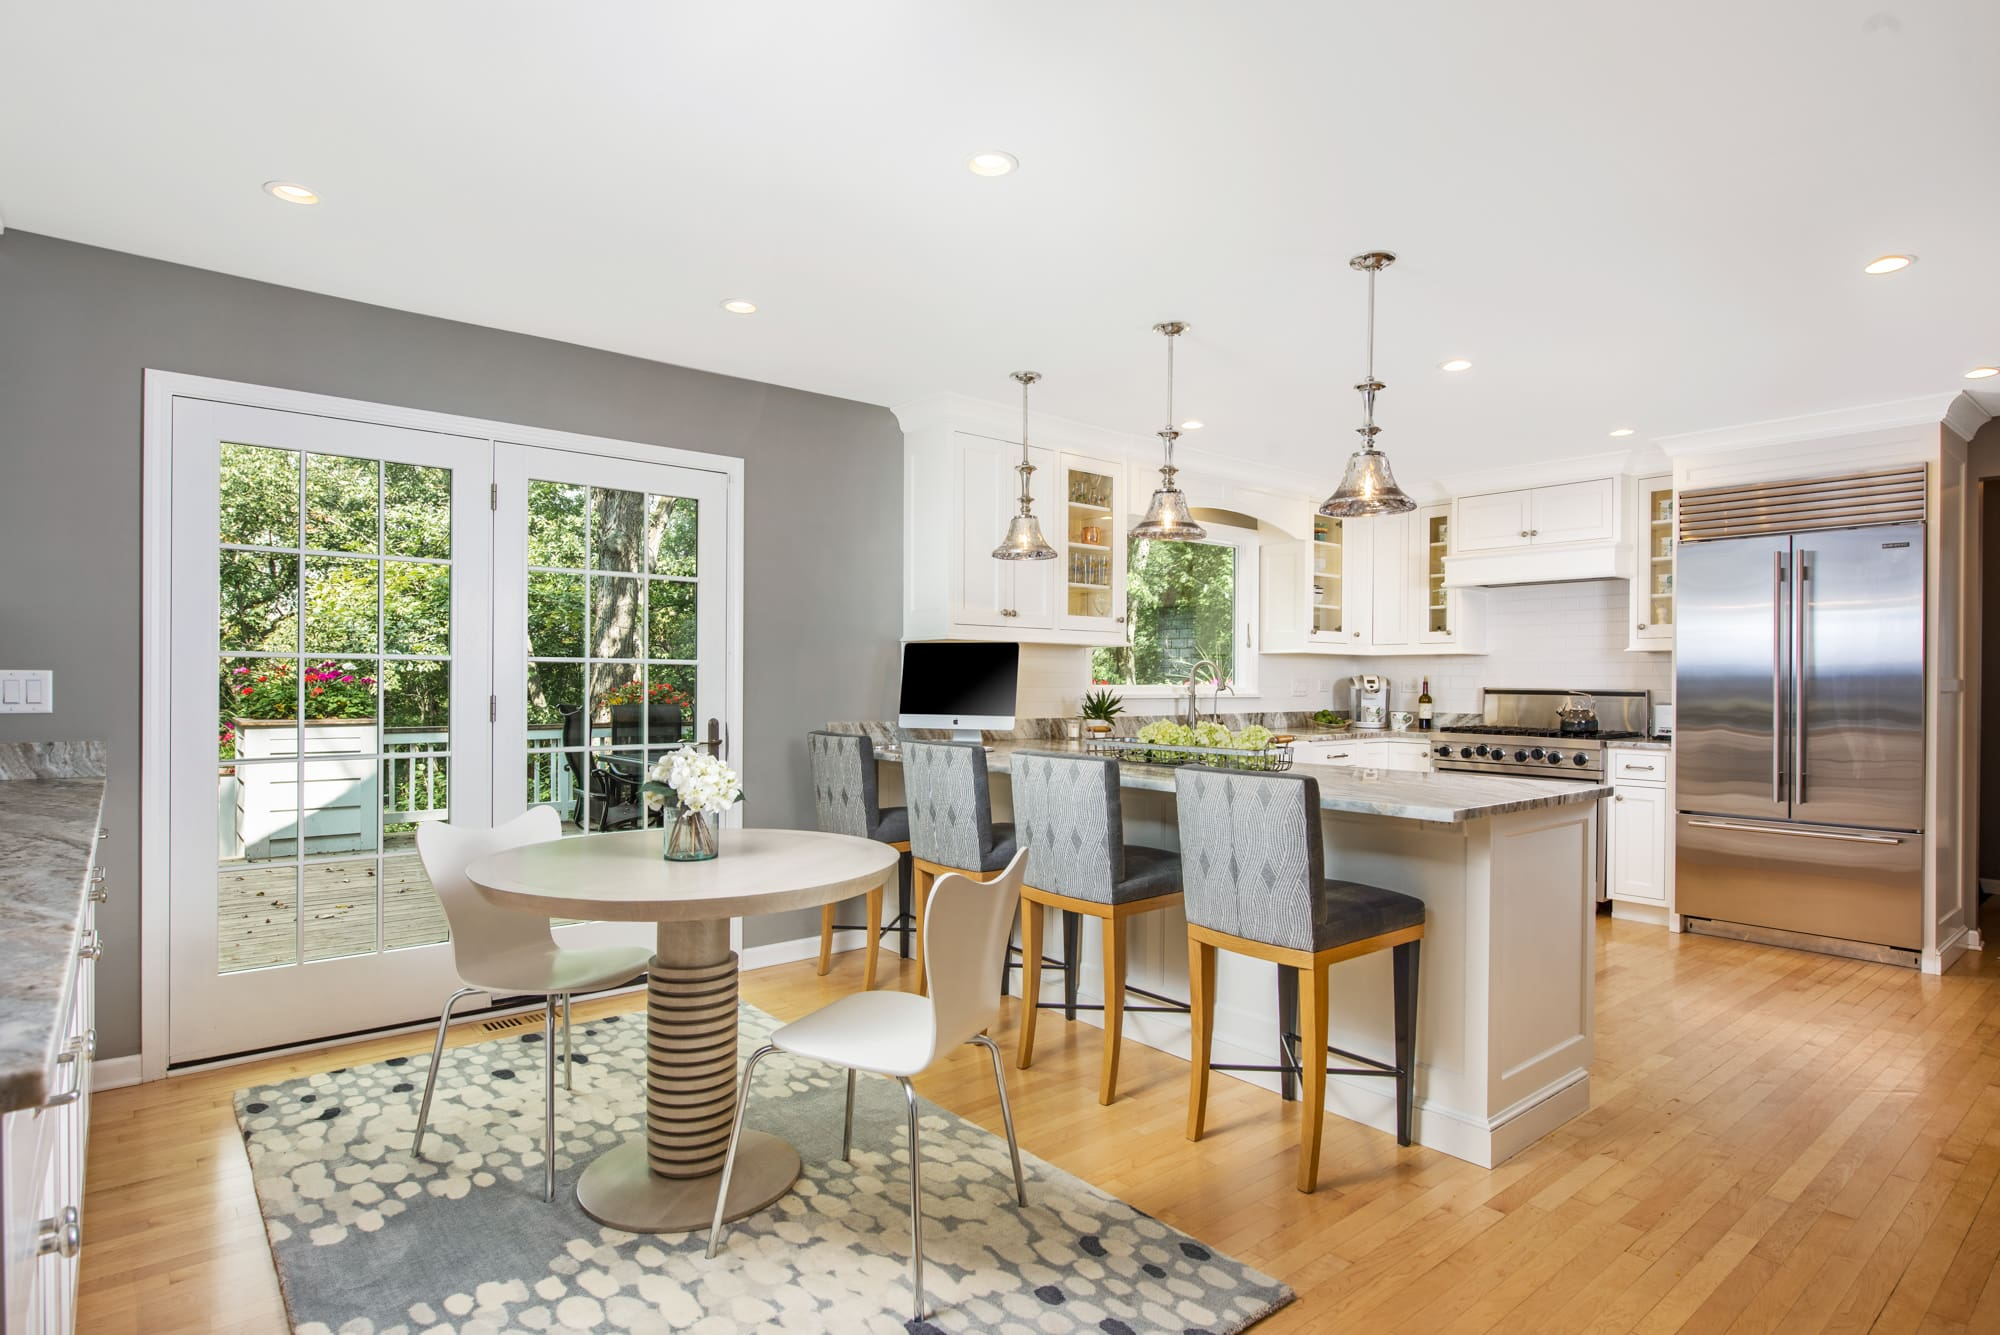 NORTH SHORE RESIDENCE - Kitchen and Dining Room renovation, including custom furniture and lighting design